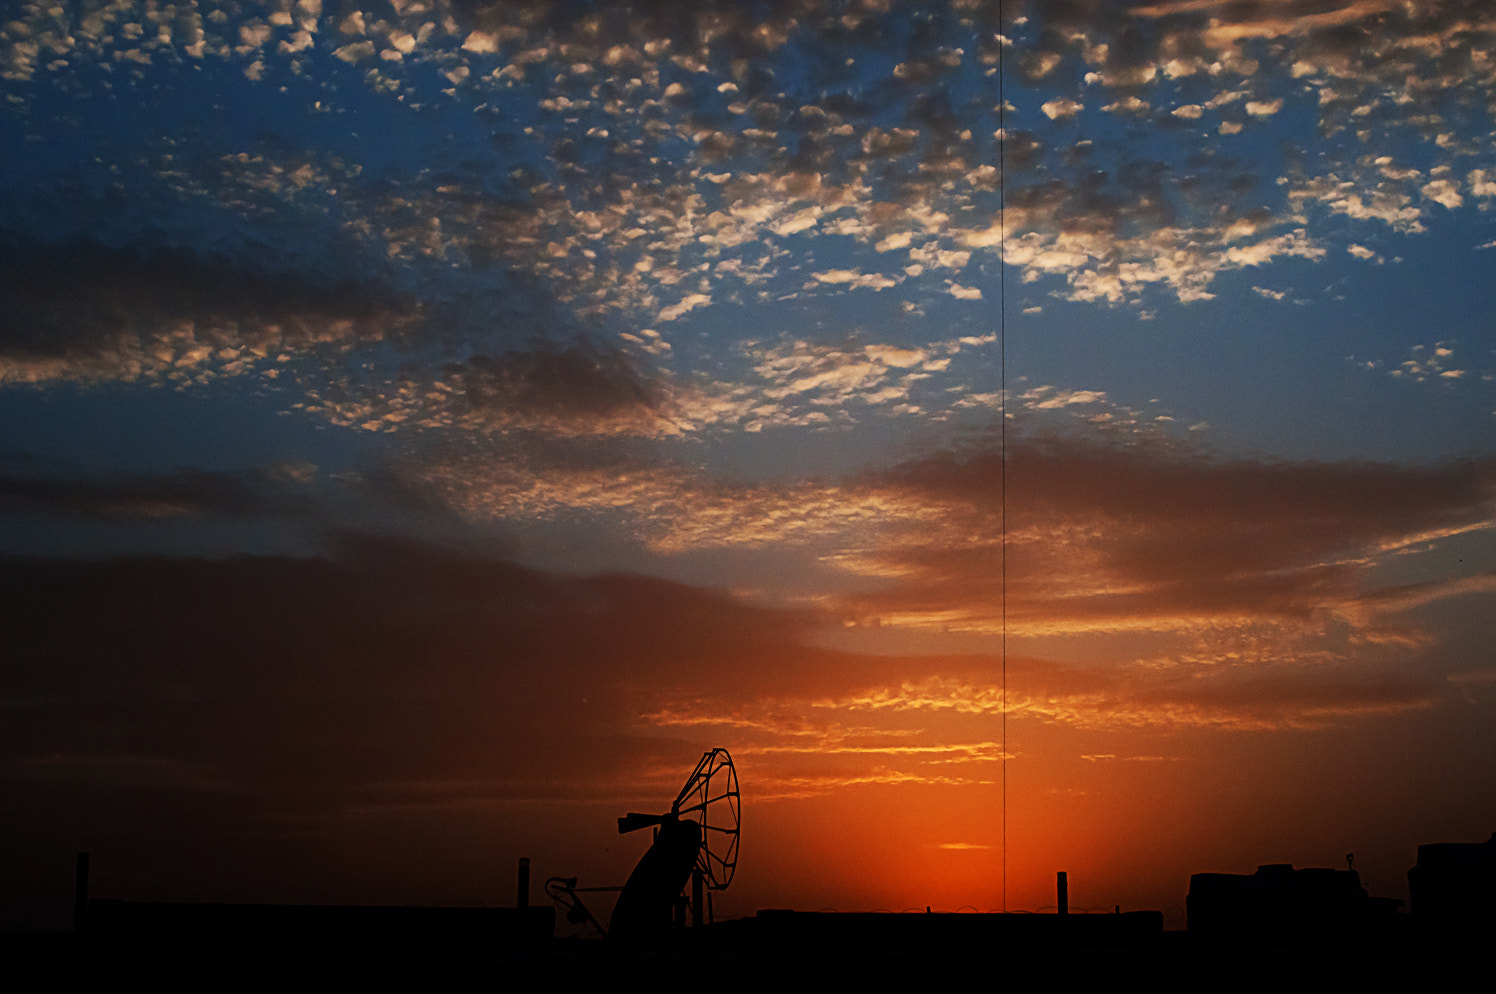 Photograph Sunset in Kandahar by Tom Allen on 500px